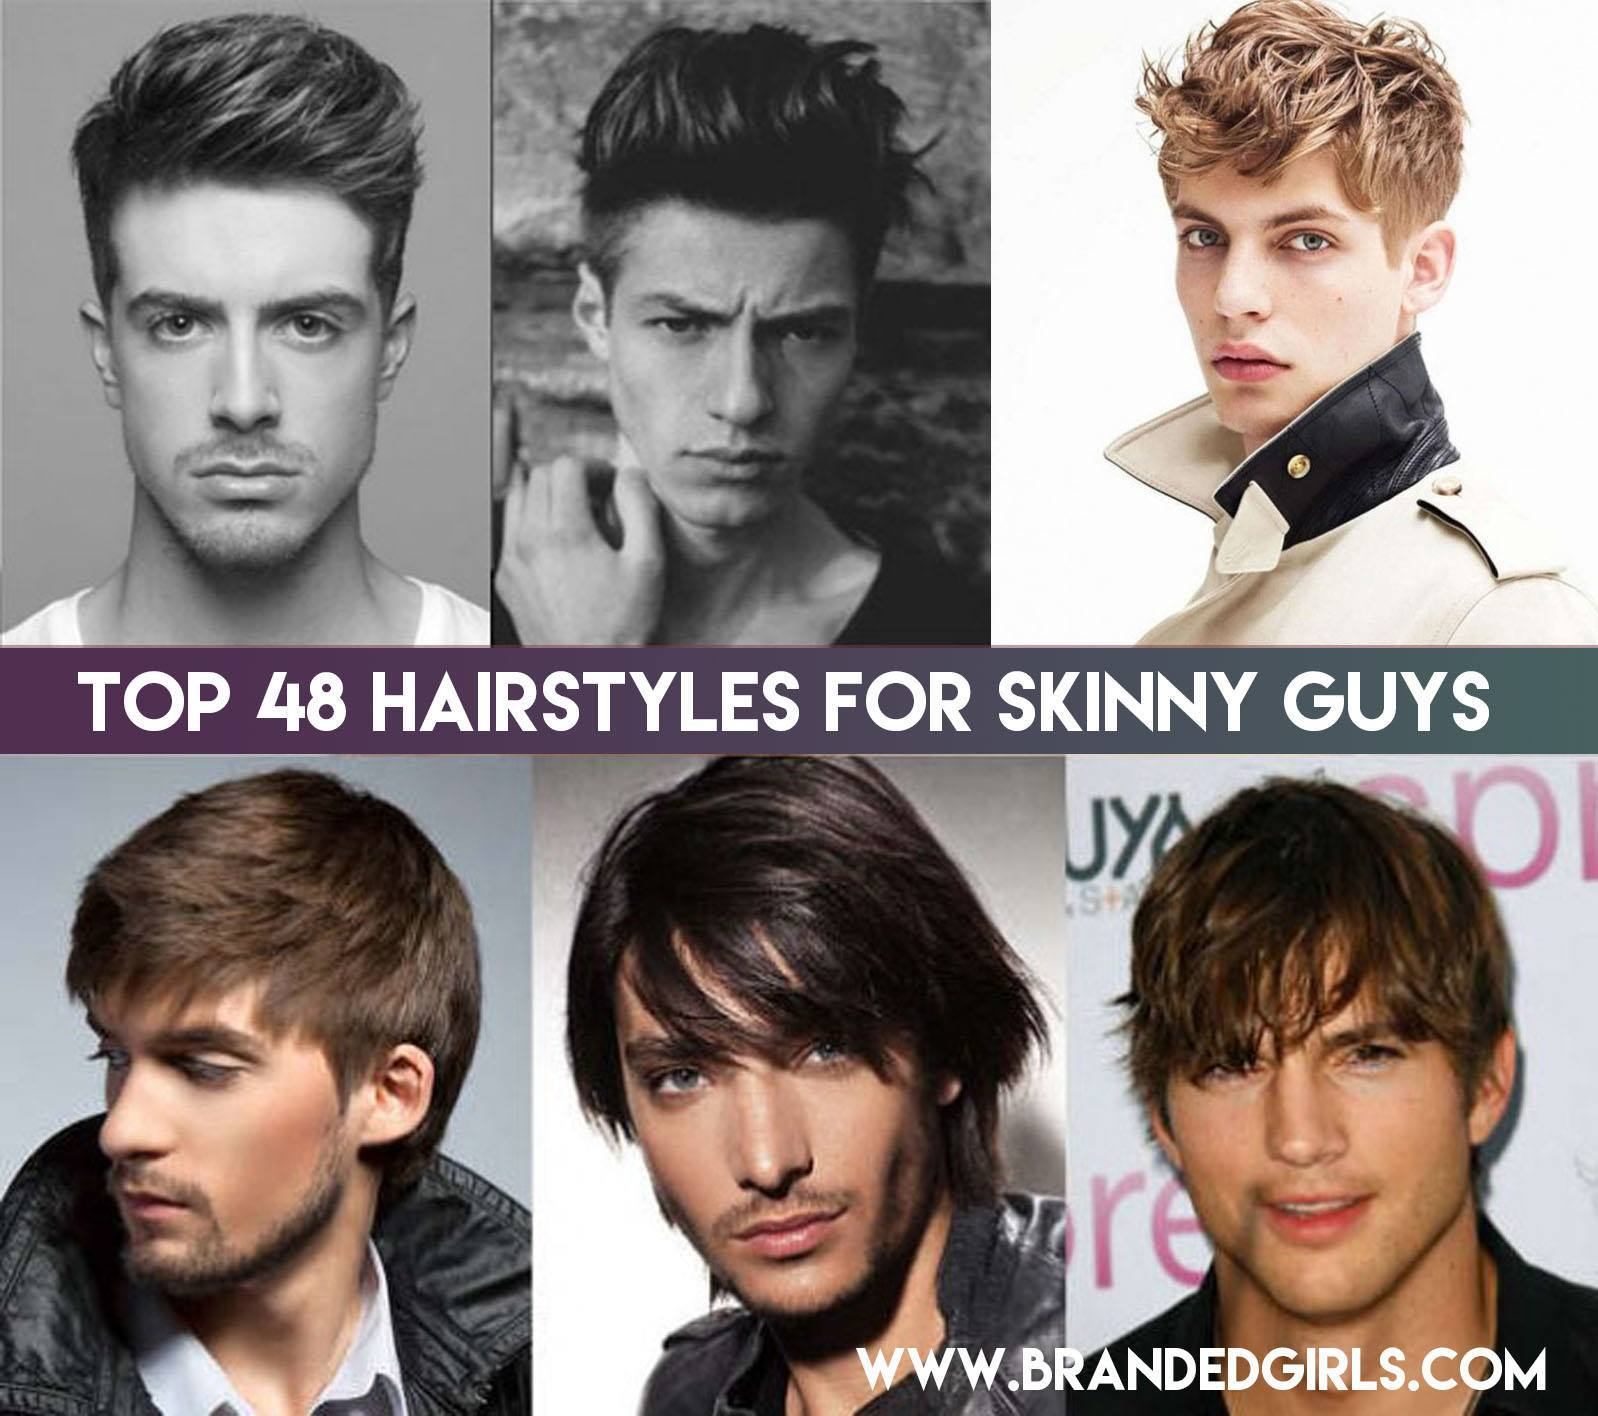 Top-Best-Hairstyles-for-Skinny-Guys 48 New Hairstyles for Skinny Boys Trending These Days